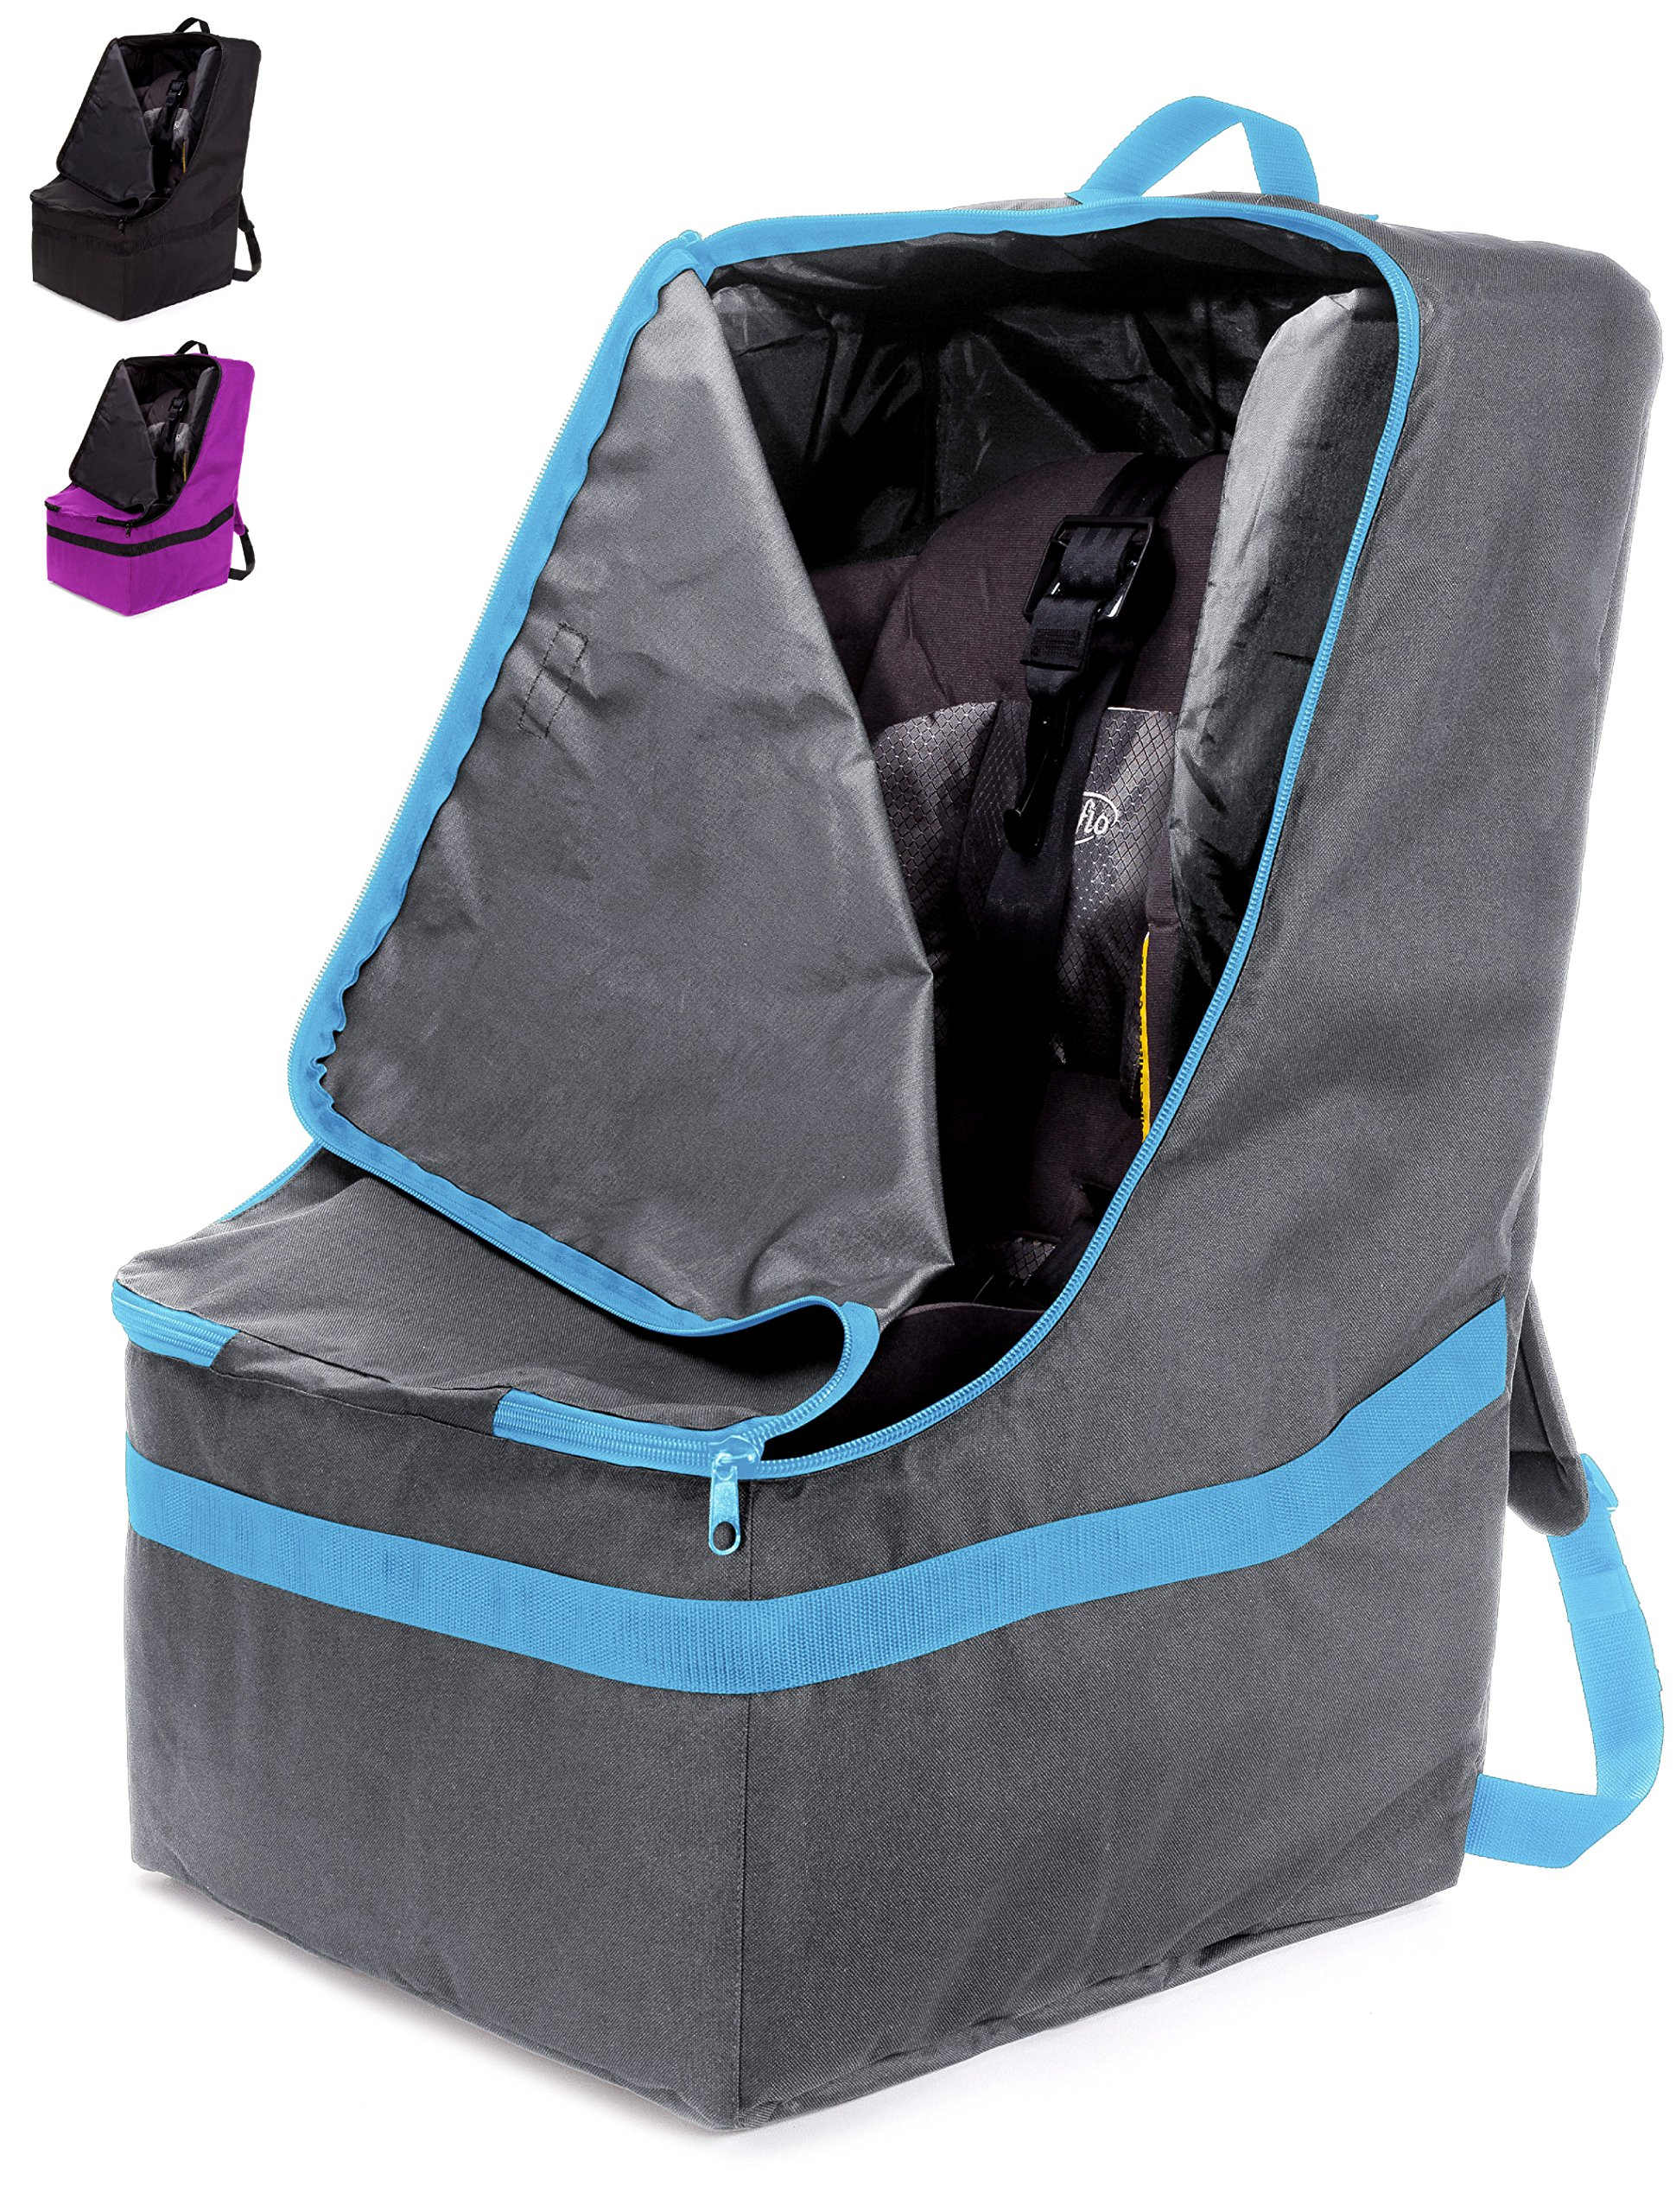 ZOHZO Car Seat Travel Bag — Adjustable, Padded Backpack for Car Seats — Car  Seat